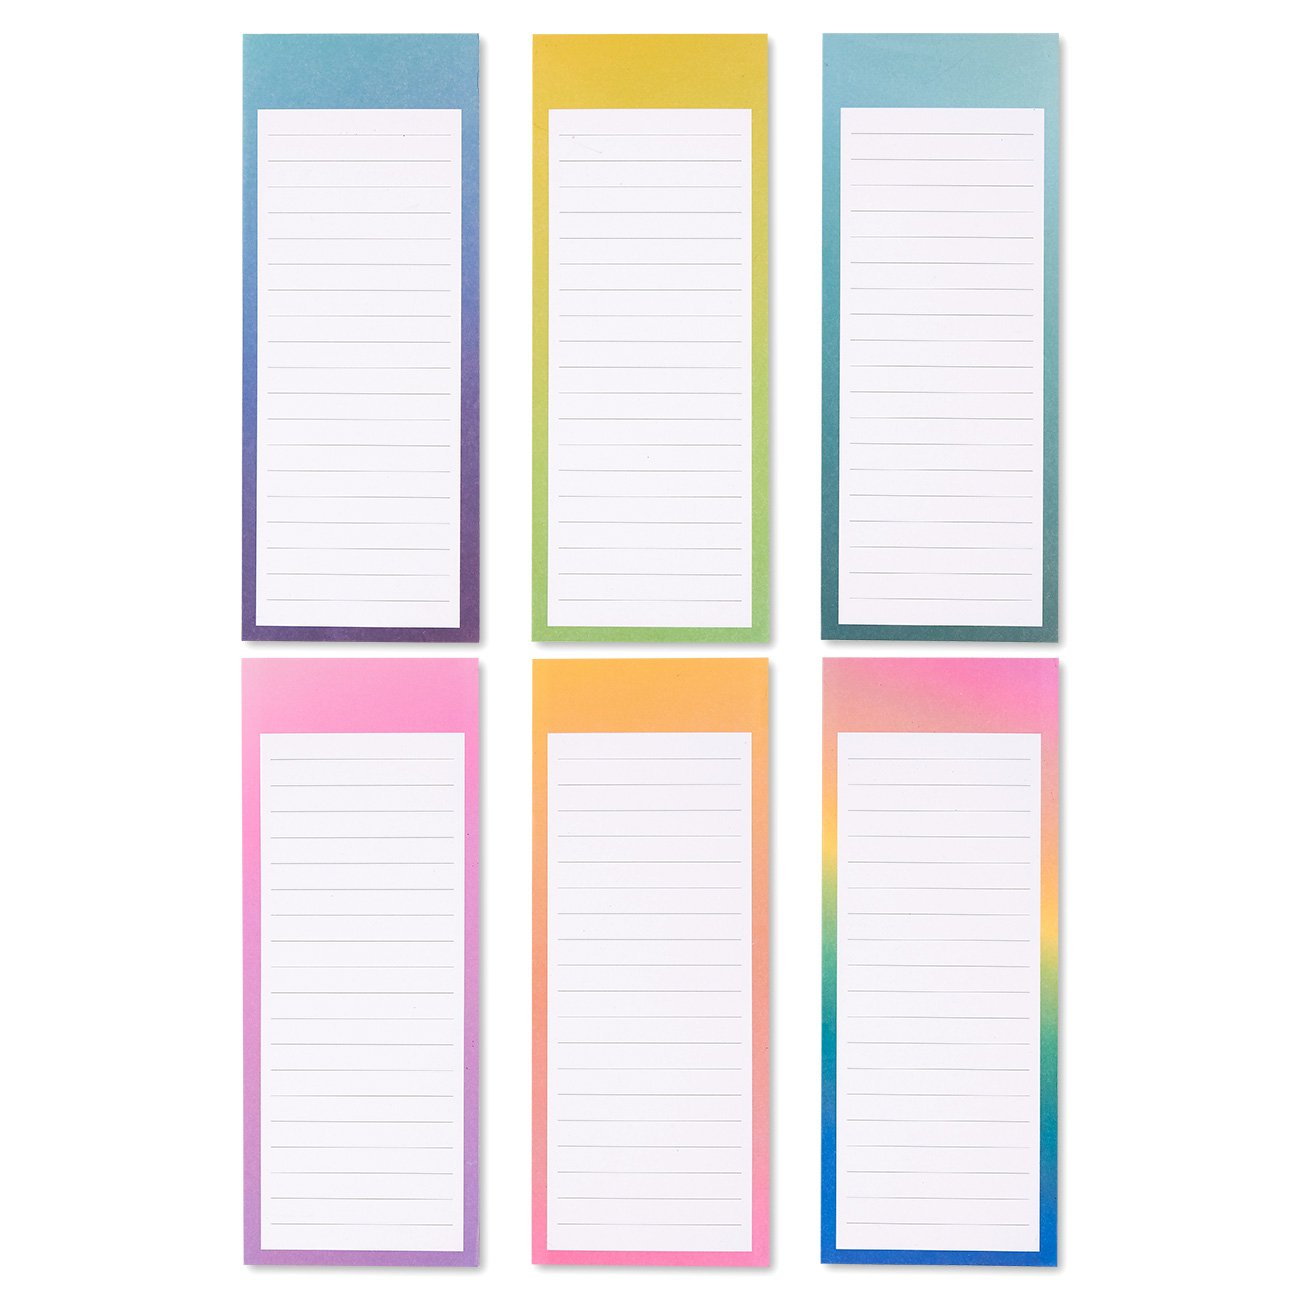 To-do-List Notepad - 12-Pack Magnetic Notepads, Fridge Grocery List Magnet Memo Pad for Shopping, To Do List, Reminders, House Chores, 6 Different Watercolor Designs, 60 Sheets Per Pad, 3.5 x 9 Inches